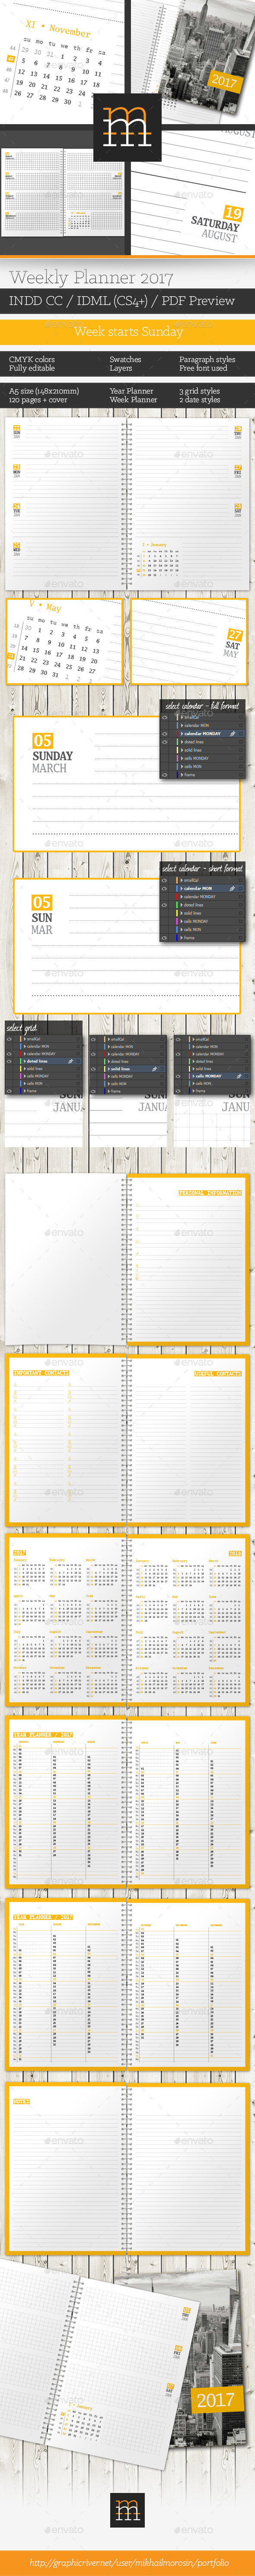 Weekly Planner 2017 - Calendars Stationery